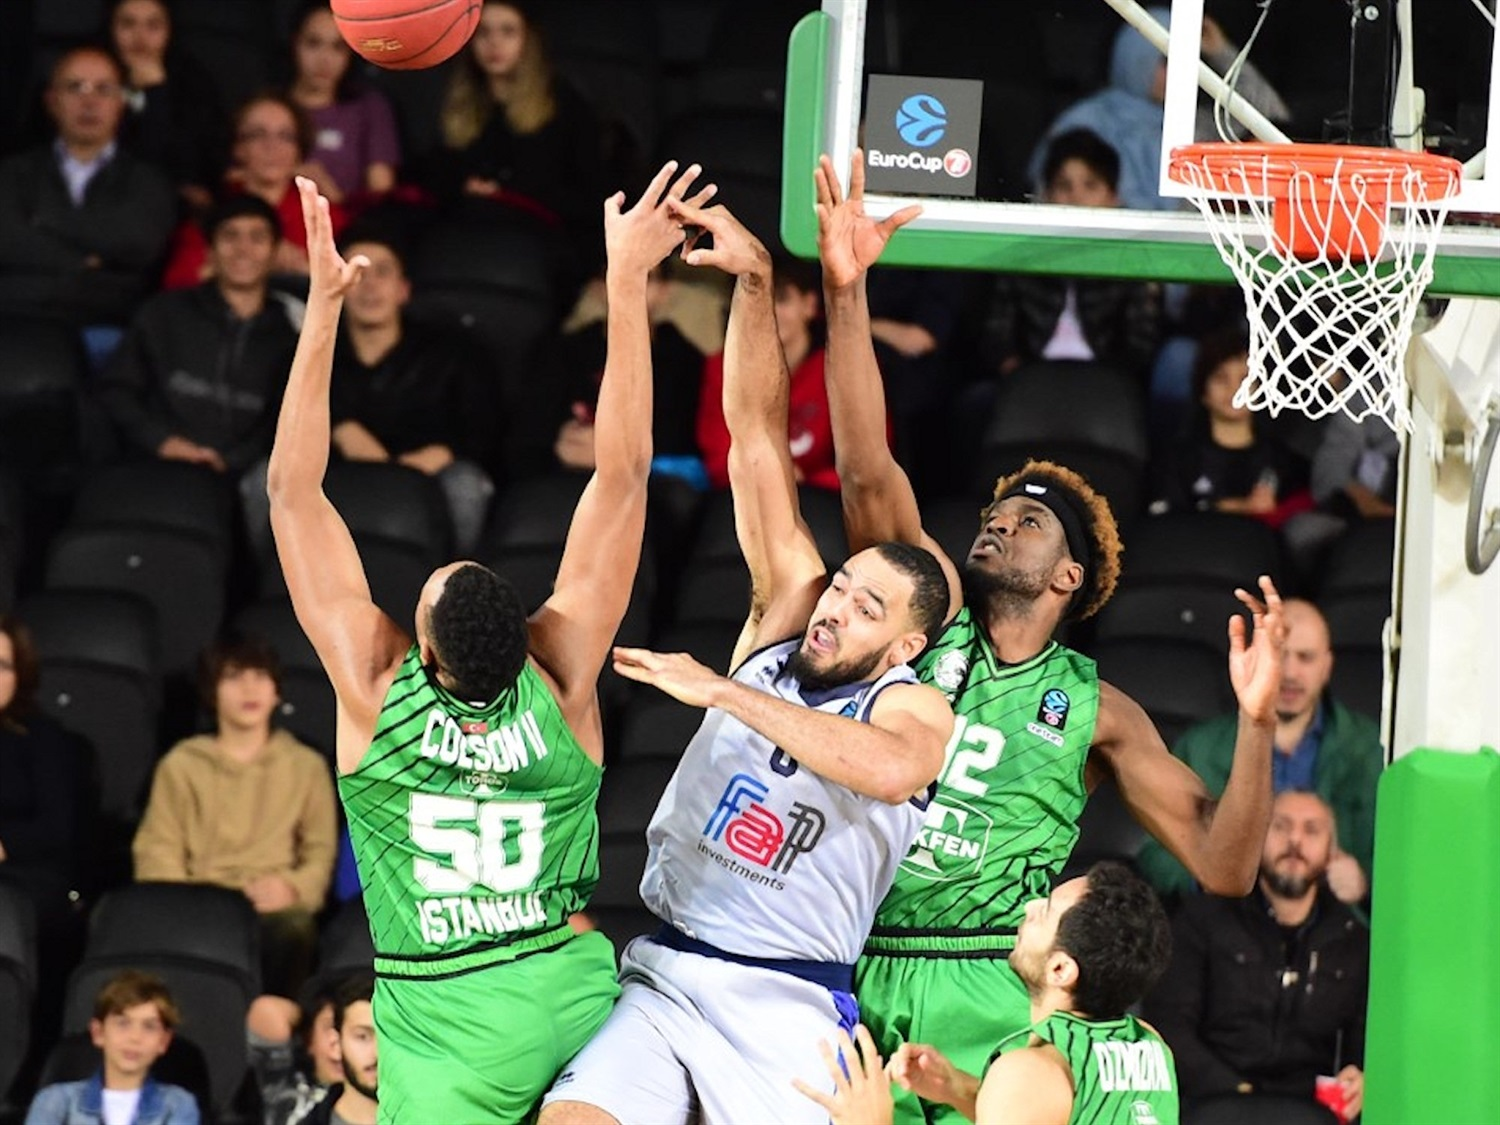 Tyler Cain - Germani Brescia Leonessa (photo Darussafaka) - EC19